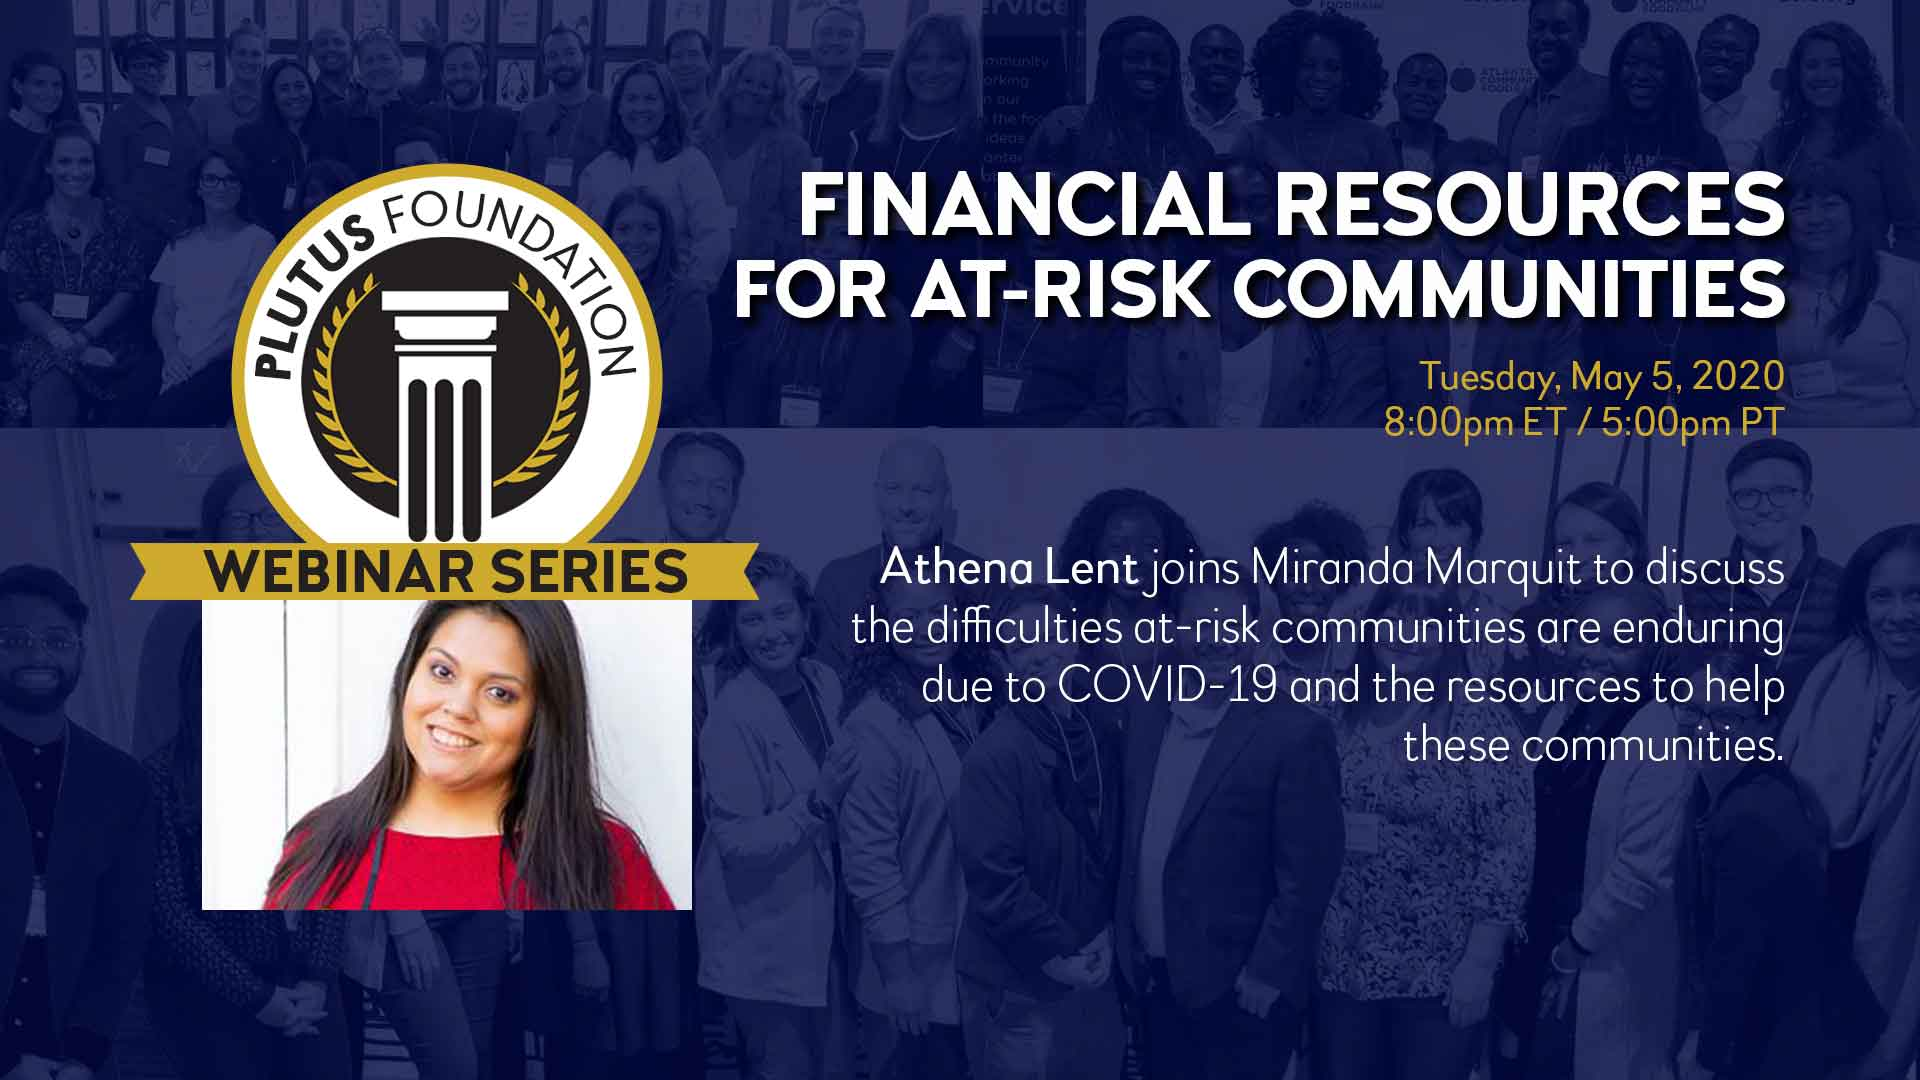 Financial Resources for At-Risk Communities